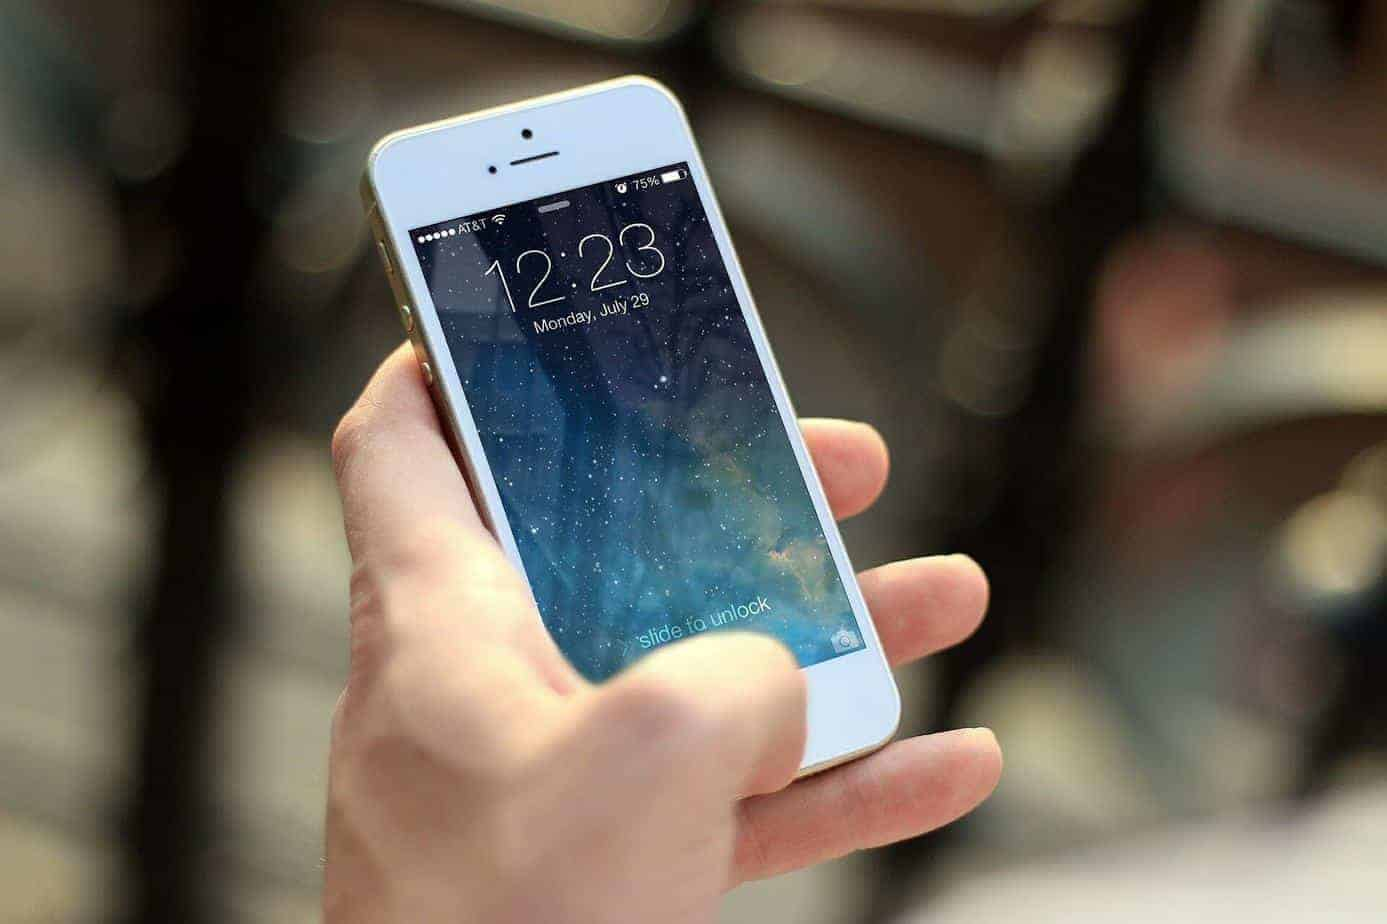 Guide to Smartphone Addiction: Statistics, Symptoms, and Solutions